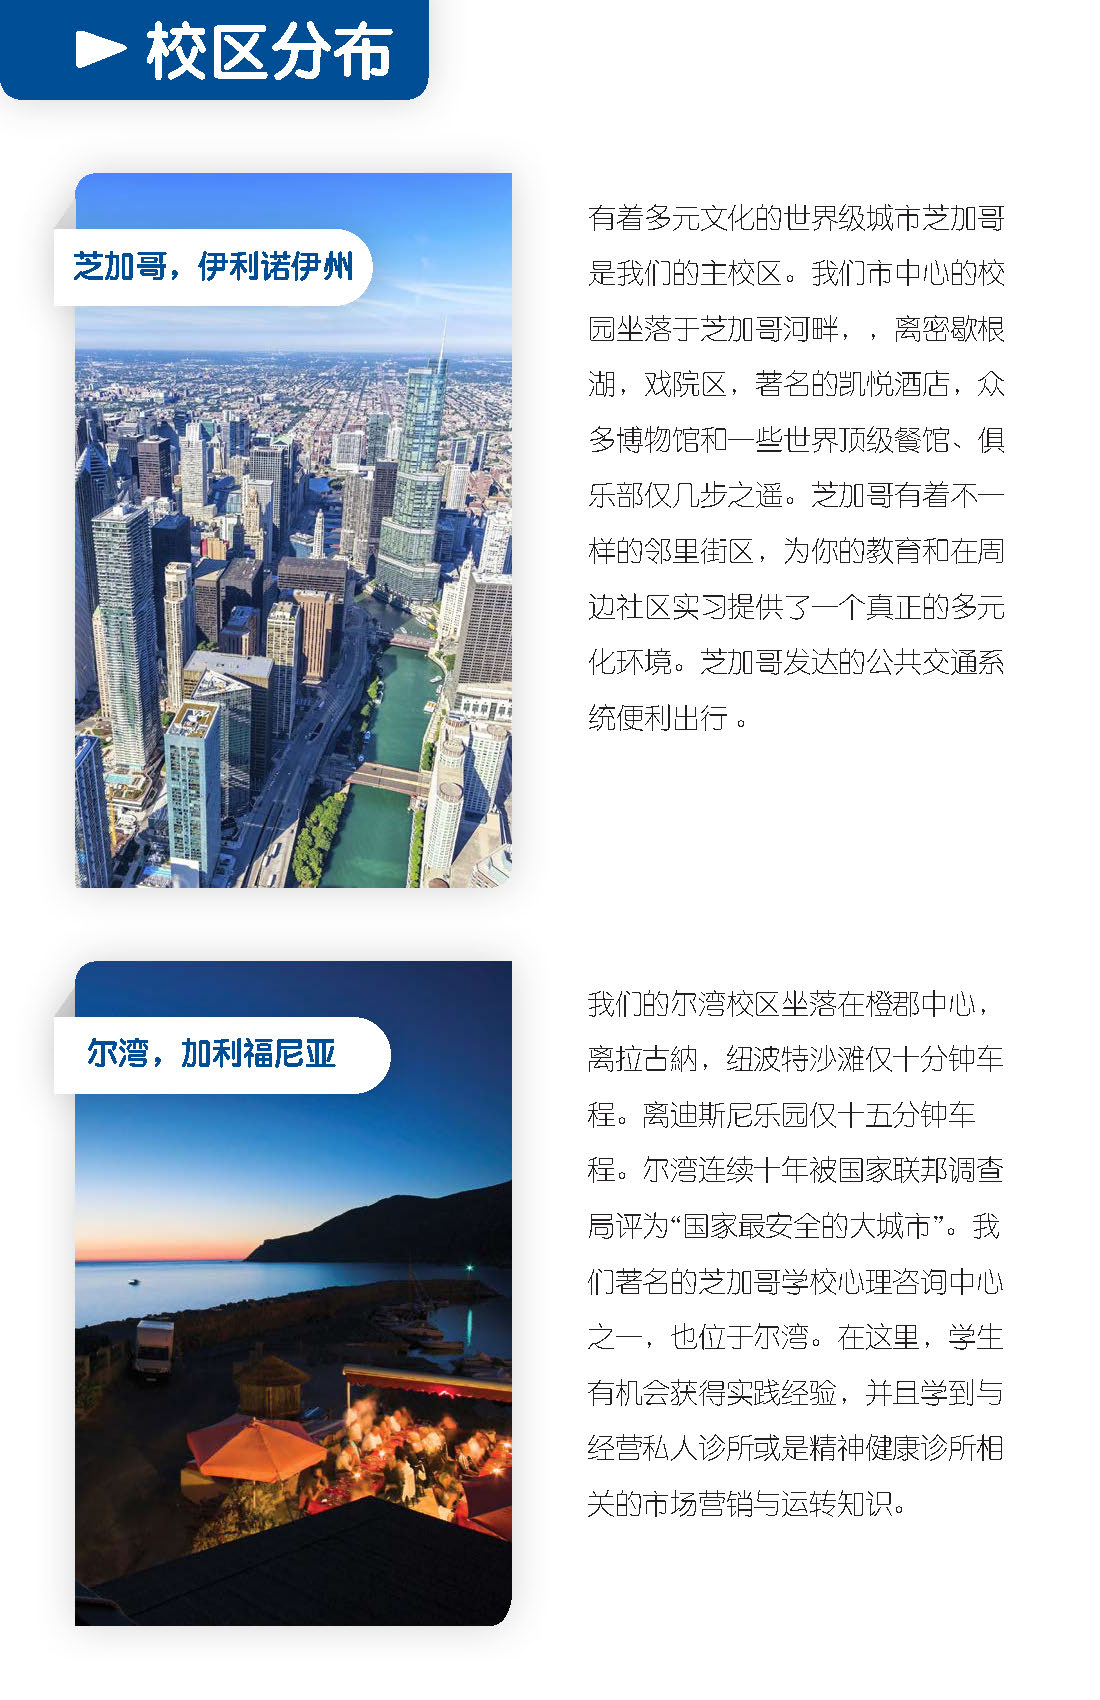 TCSPP_ChineseBrochure_FINAL_Page_7